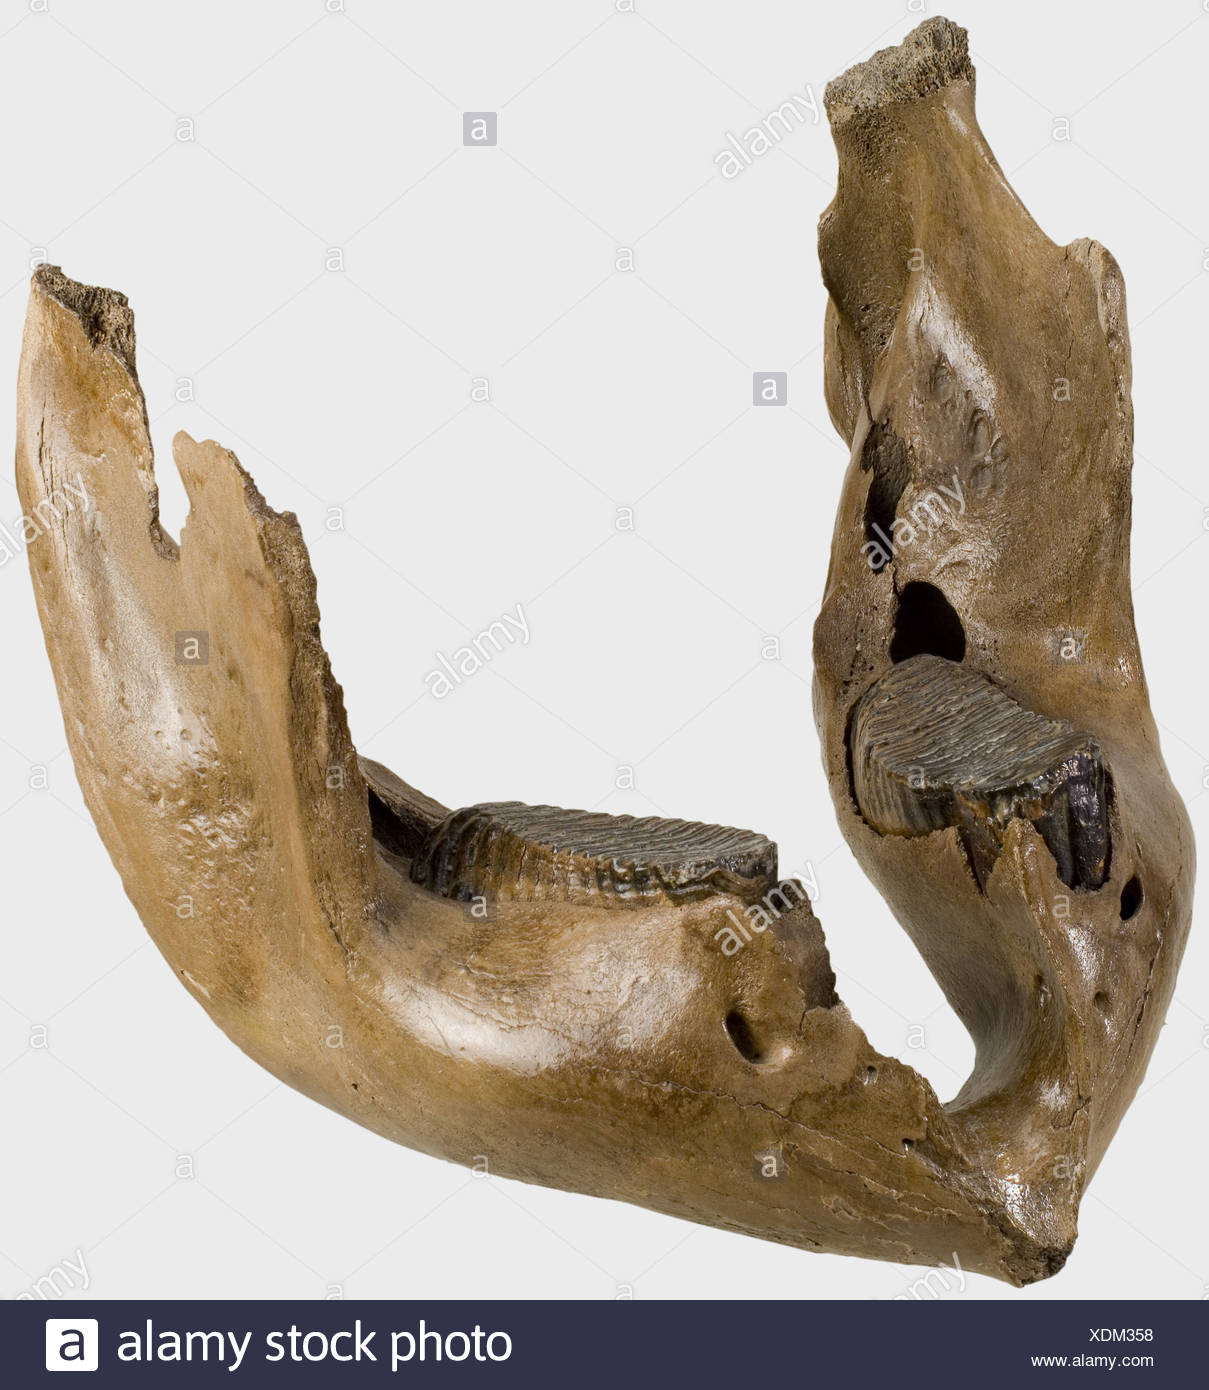 A mammoth's lower jaw, age approximately 20,000 years BP. Fossilised lower jaw bone with massive molars. Traces of abrasion in the region of the joint, somewhat cracked in places. Width 48 cm. Weight 12.6 kg. Contrary to accepted opinion, the mammoth (Mammuthus primigenius) is not the ancestor of the modern African or Indian elephant, but merely related. historic, historical, prehistory, handicrafts, handcraft, craft, object, objects, stills, clipping, clippings, cut out, cut-out, cut-outs, fine arts, art, artful, Additional-Rights-Clearences-NA - Stock Image